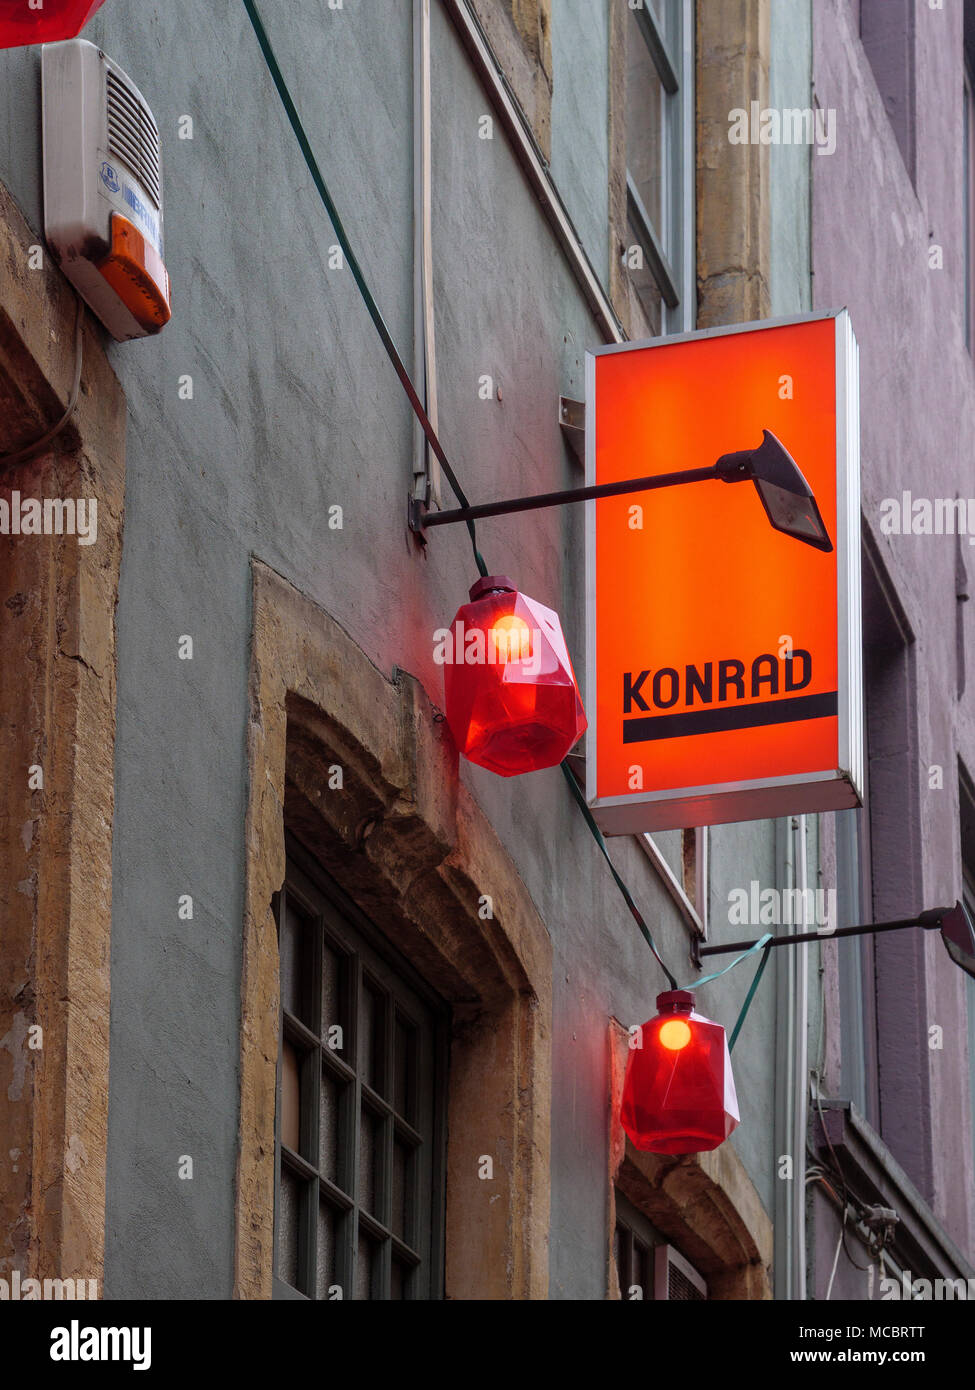 Boutiquebar Konrad 7 rue du Nord, Luxembourg City, Europe - Stock Image